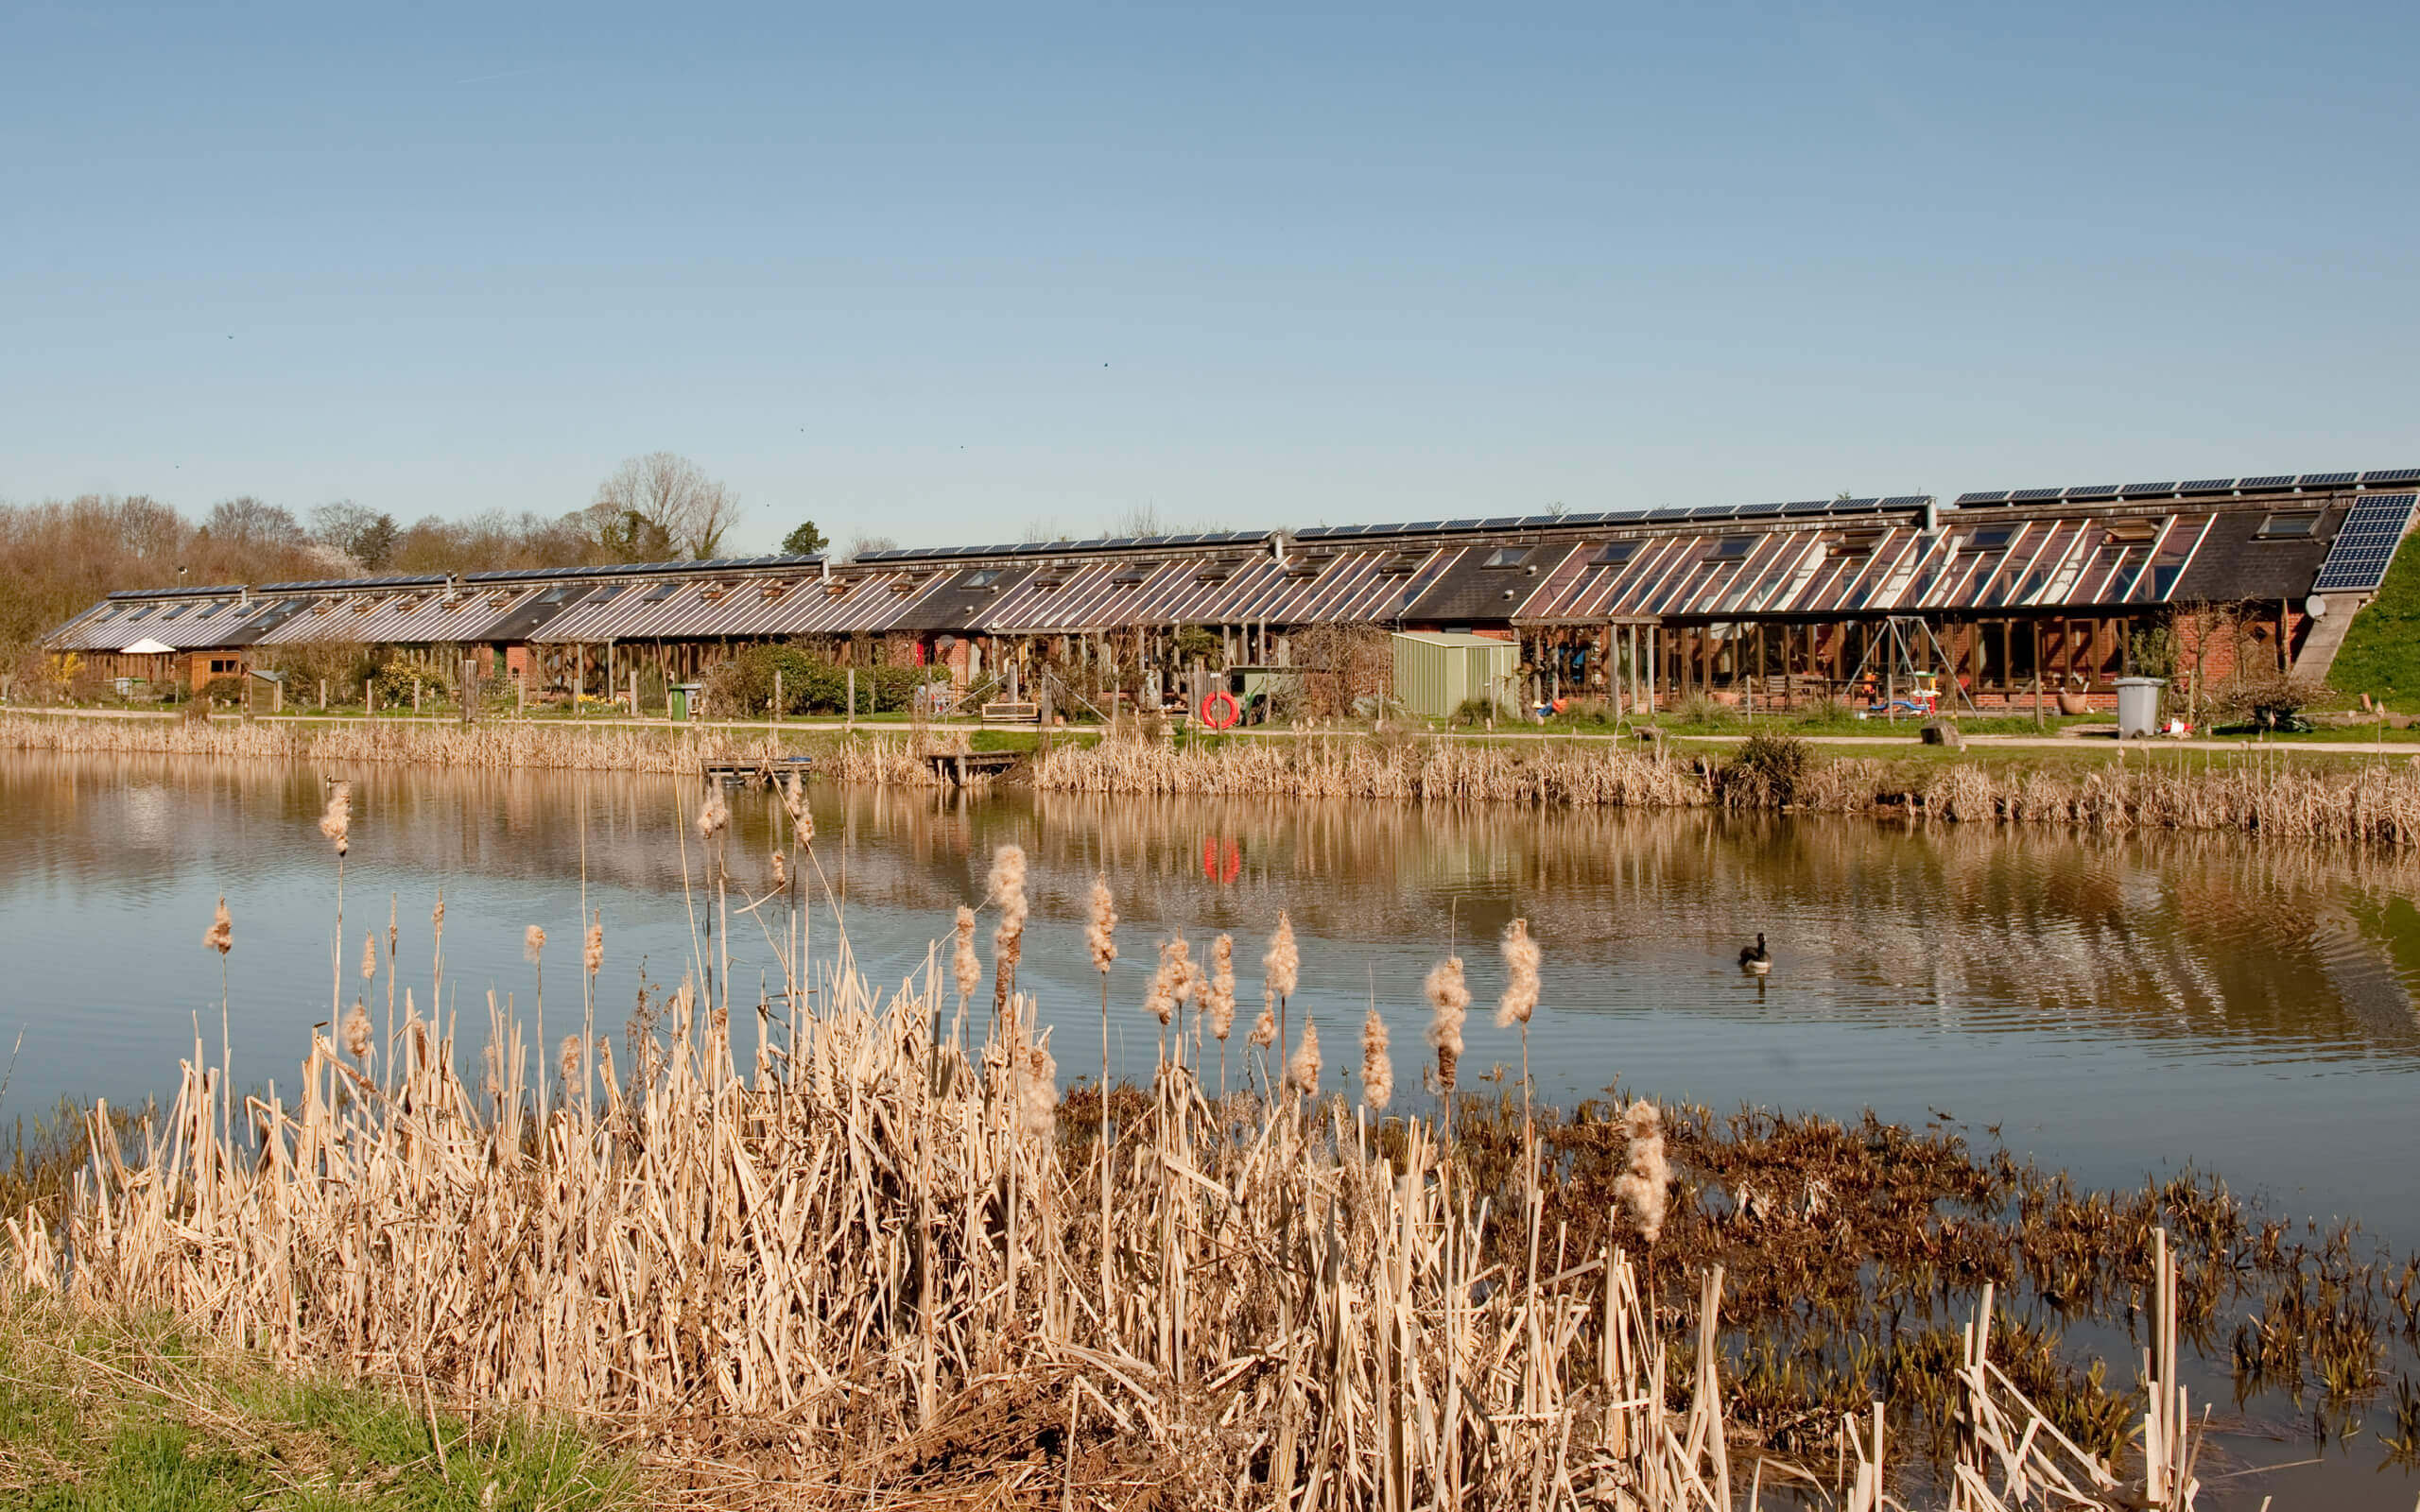 Sustainable homes at the Hockerton Housing Project